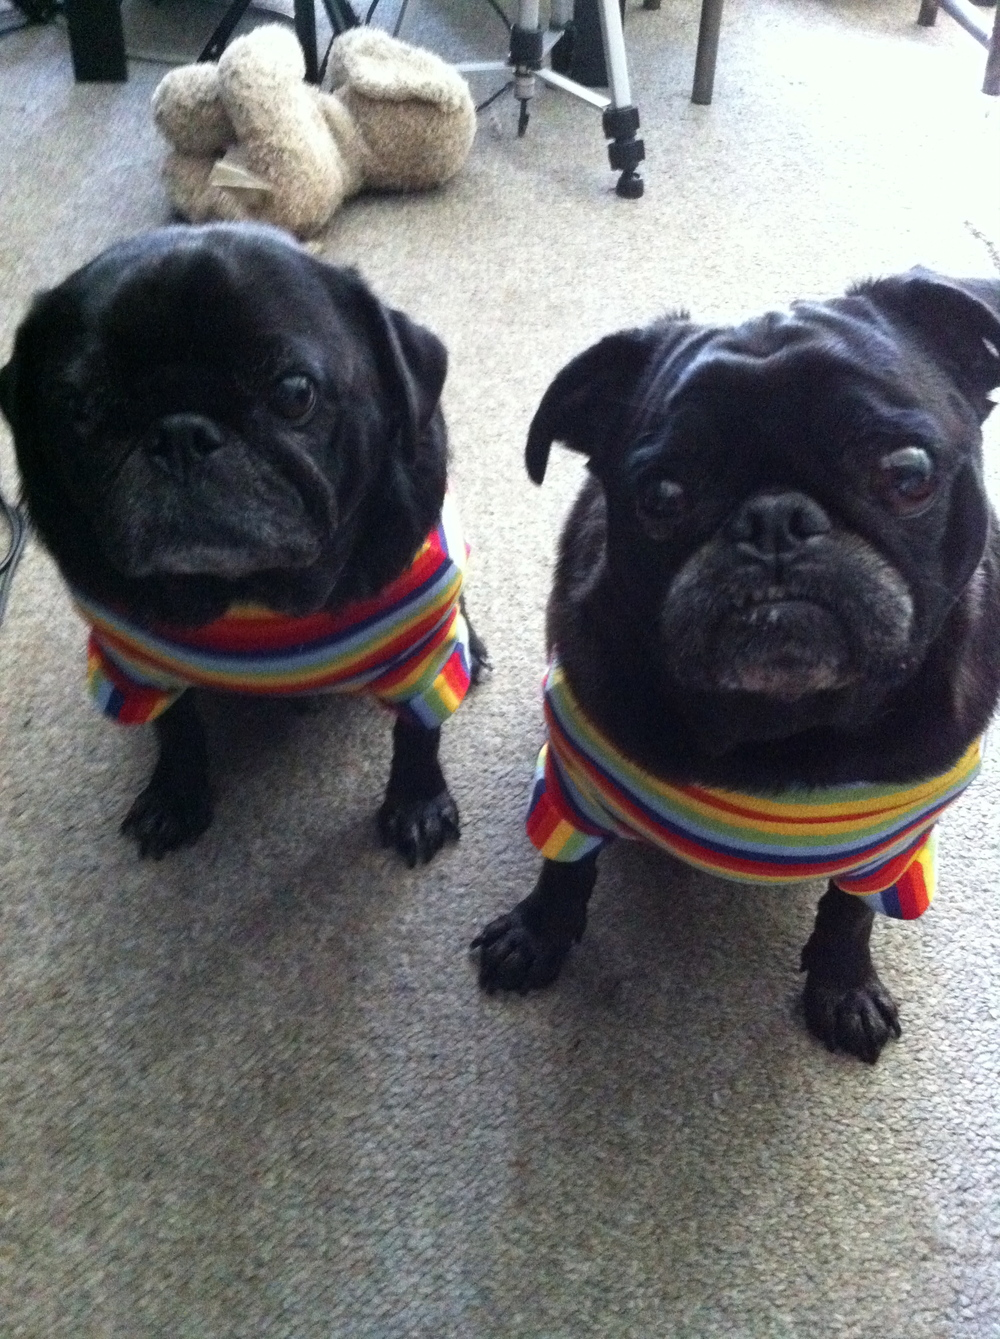 Hummus and Miso in their Pride t-shirts :)